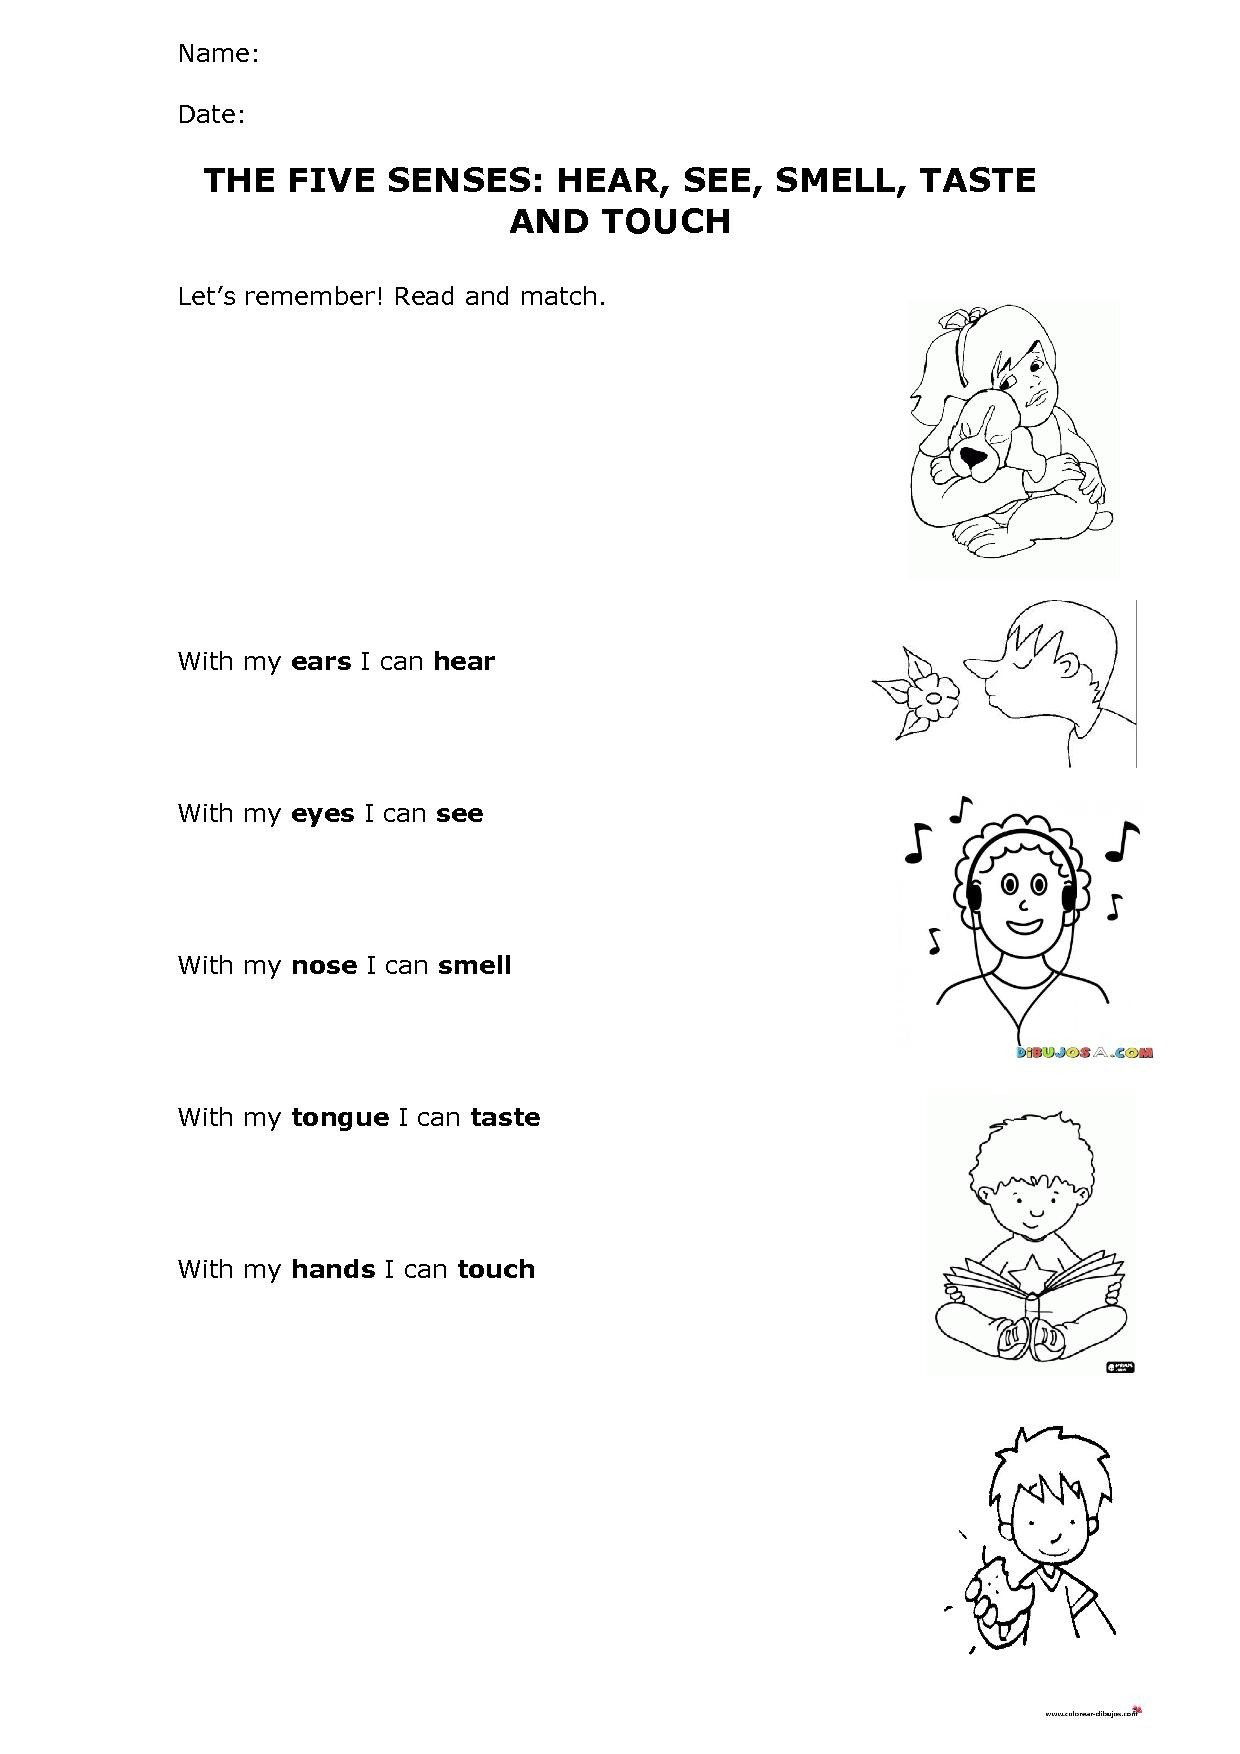 Sense Of Taste Worksheets the Five Senses Hear See Smell Taste and touch Worksheet